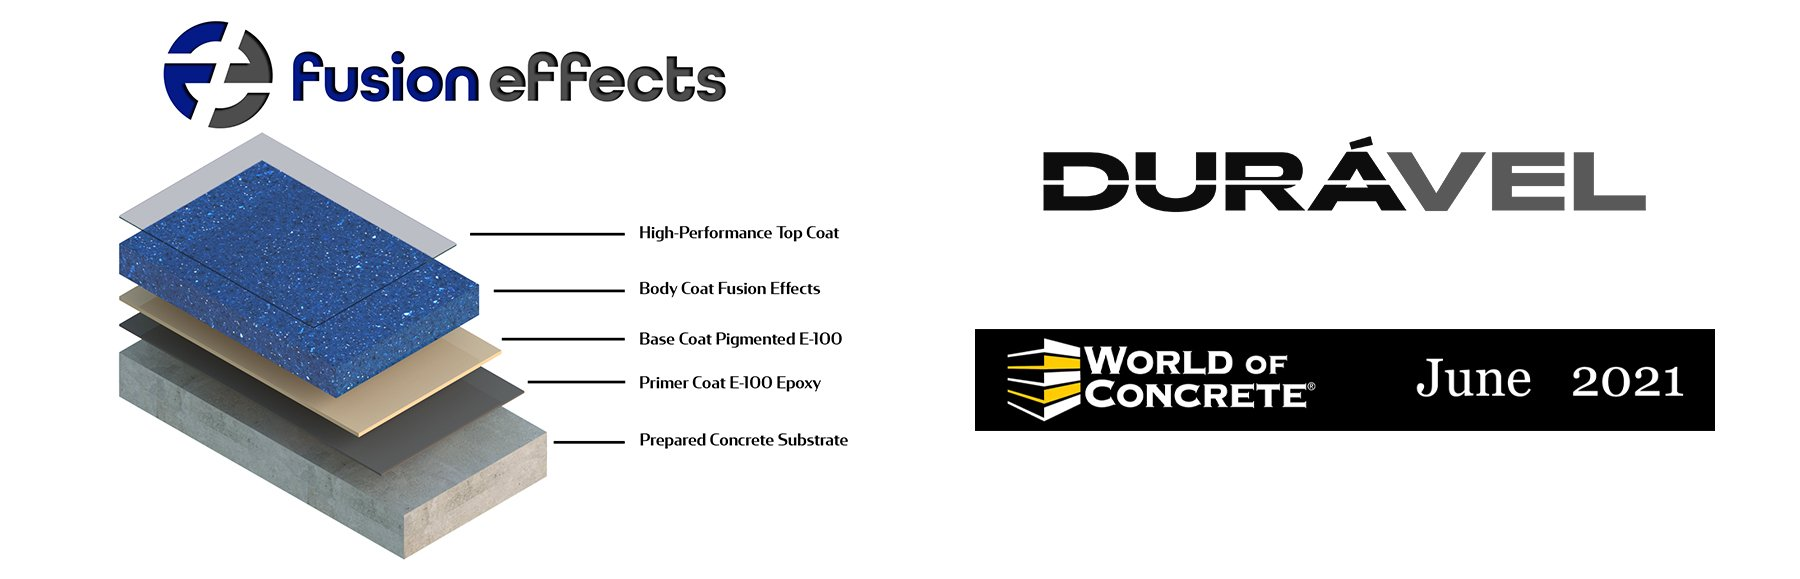 Fusion Effects by Duravel Products